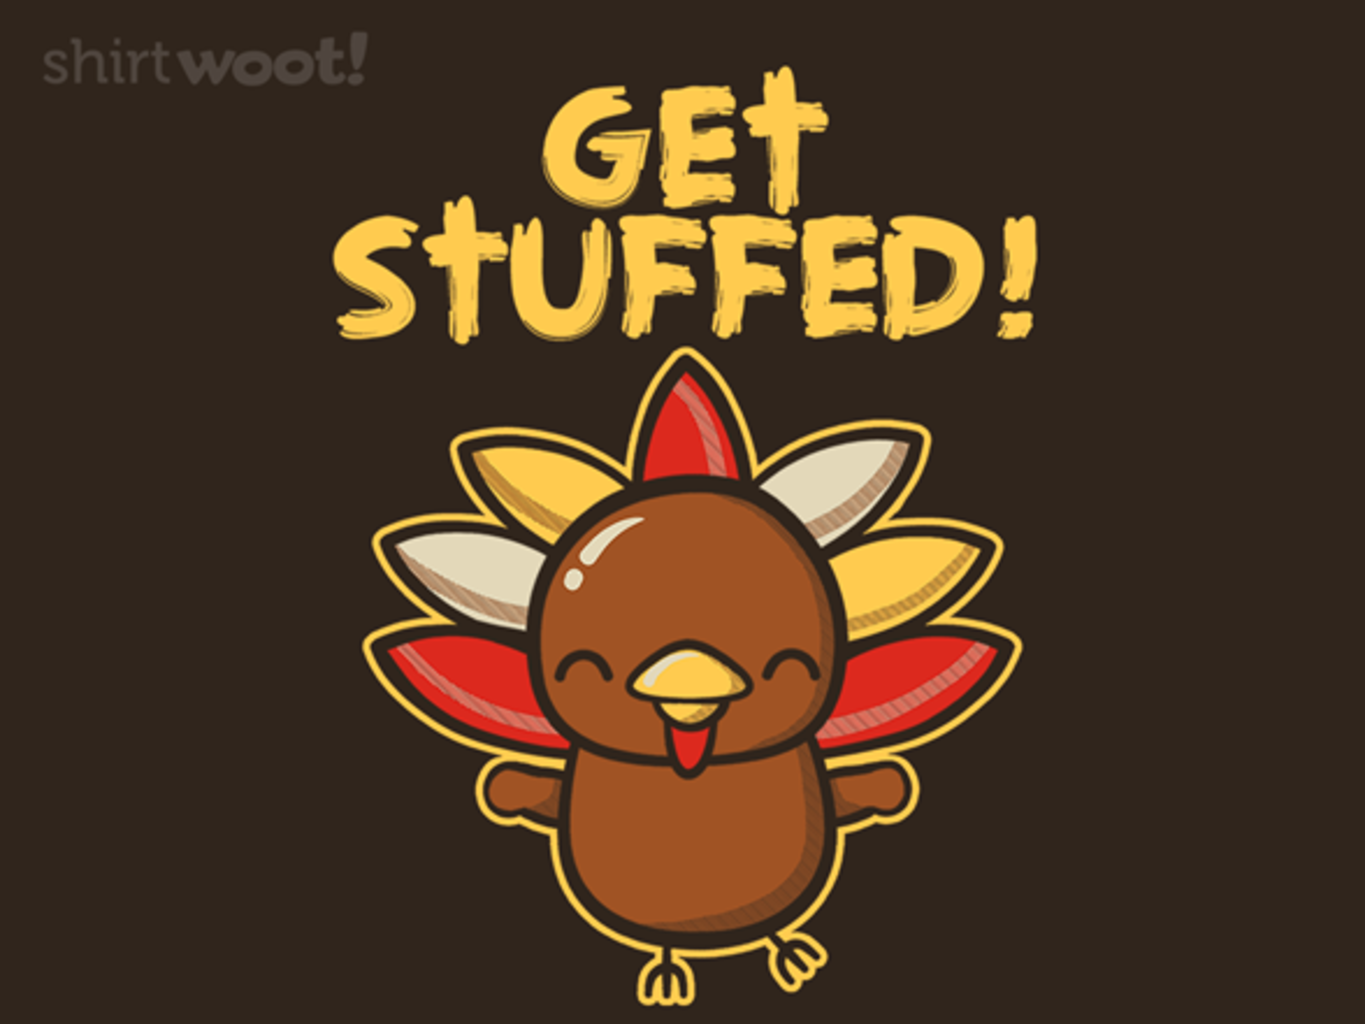 Woot!: Stuffed